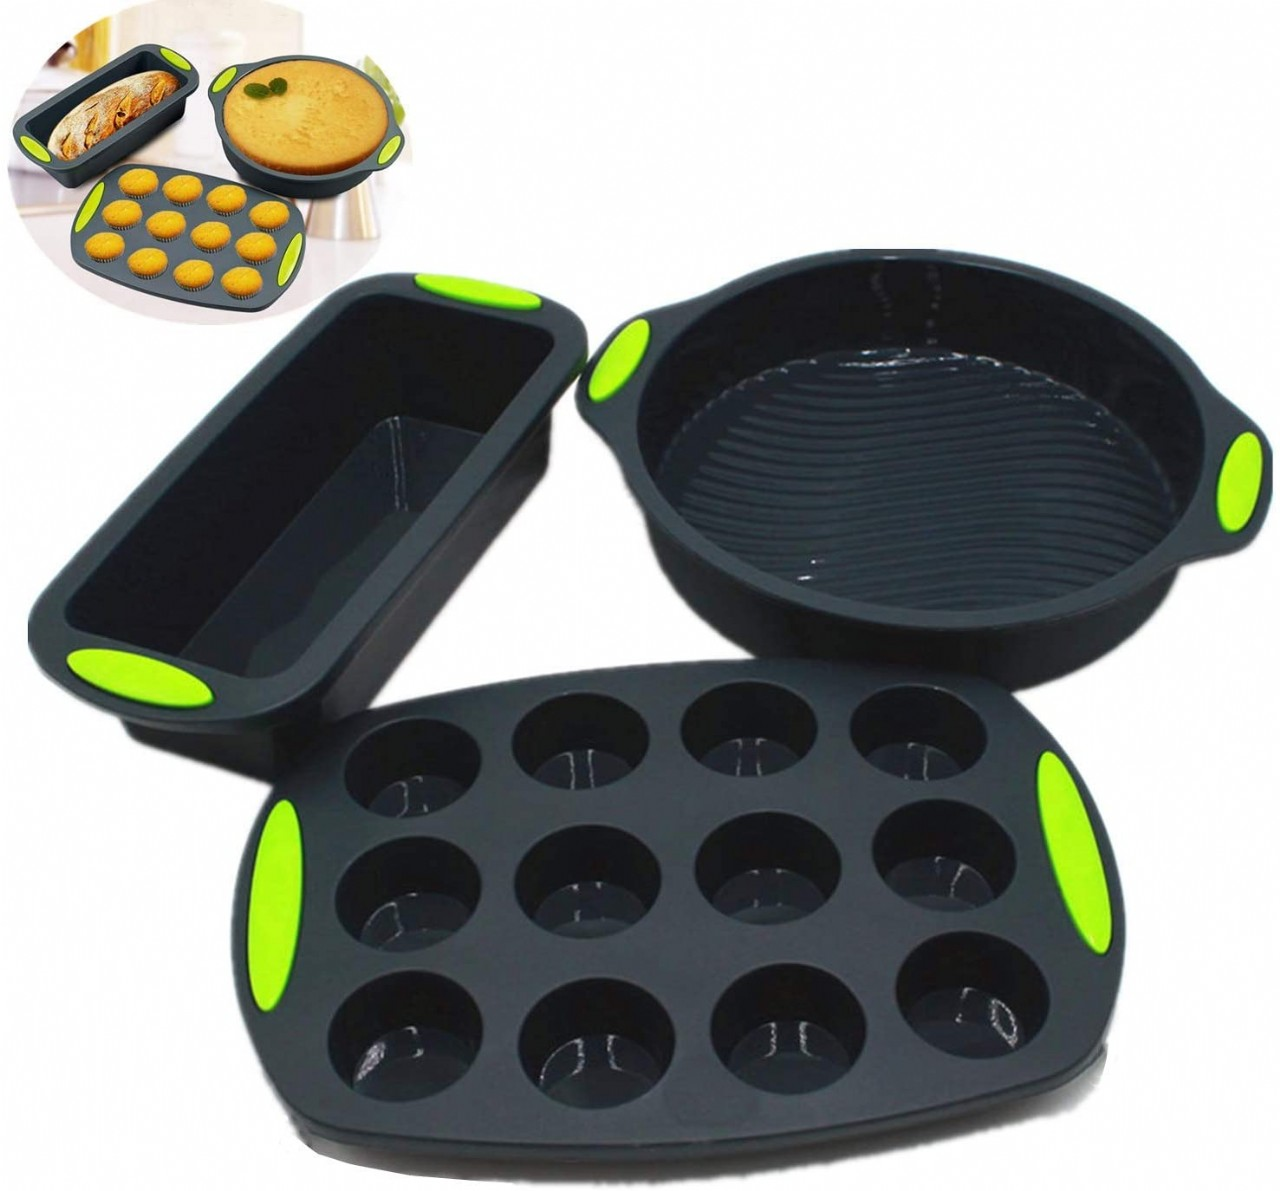 Silicone Bakeware Pan set Cake Molds for Baking Sheet Muffin 12 cup Toast Loaf Bread Pizza Pan Tray